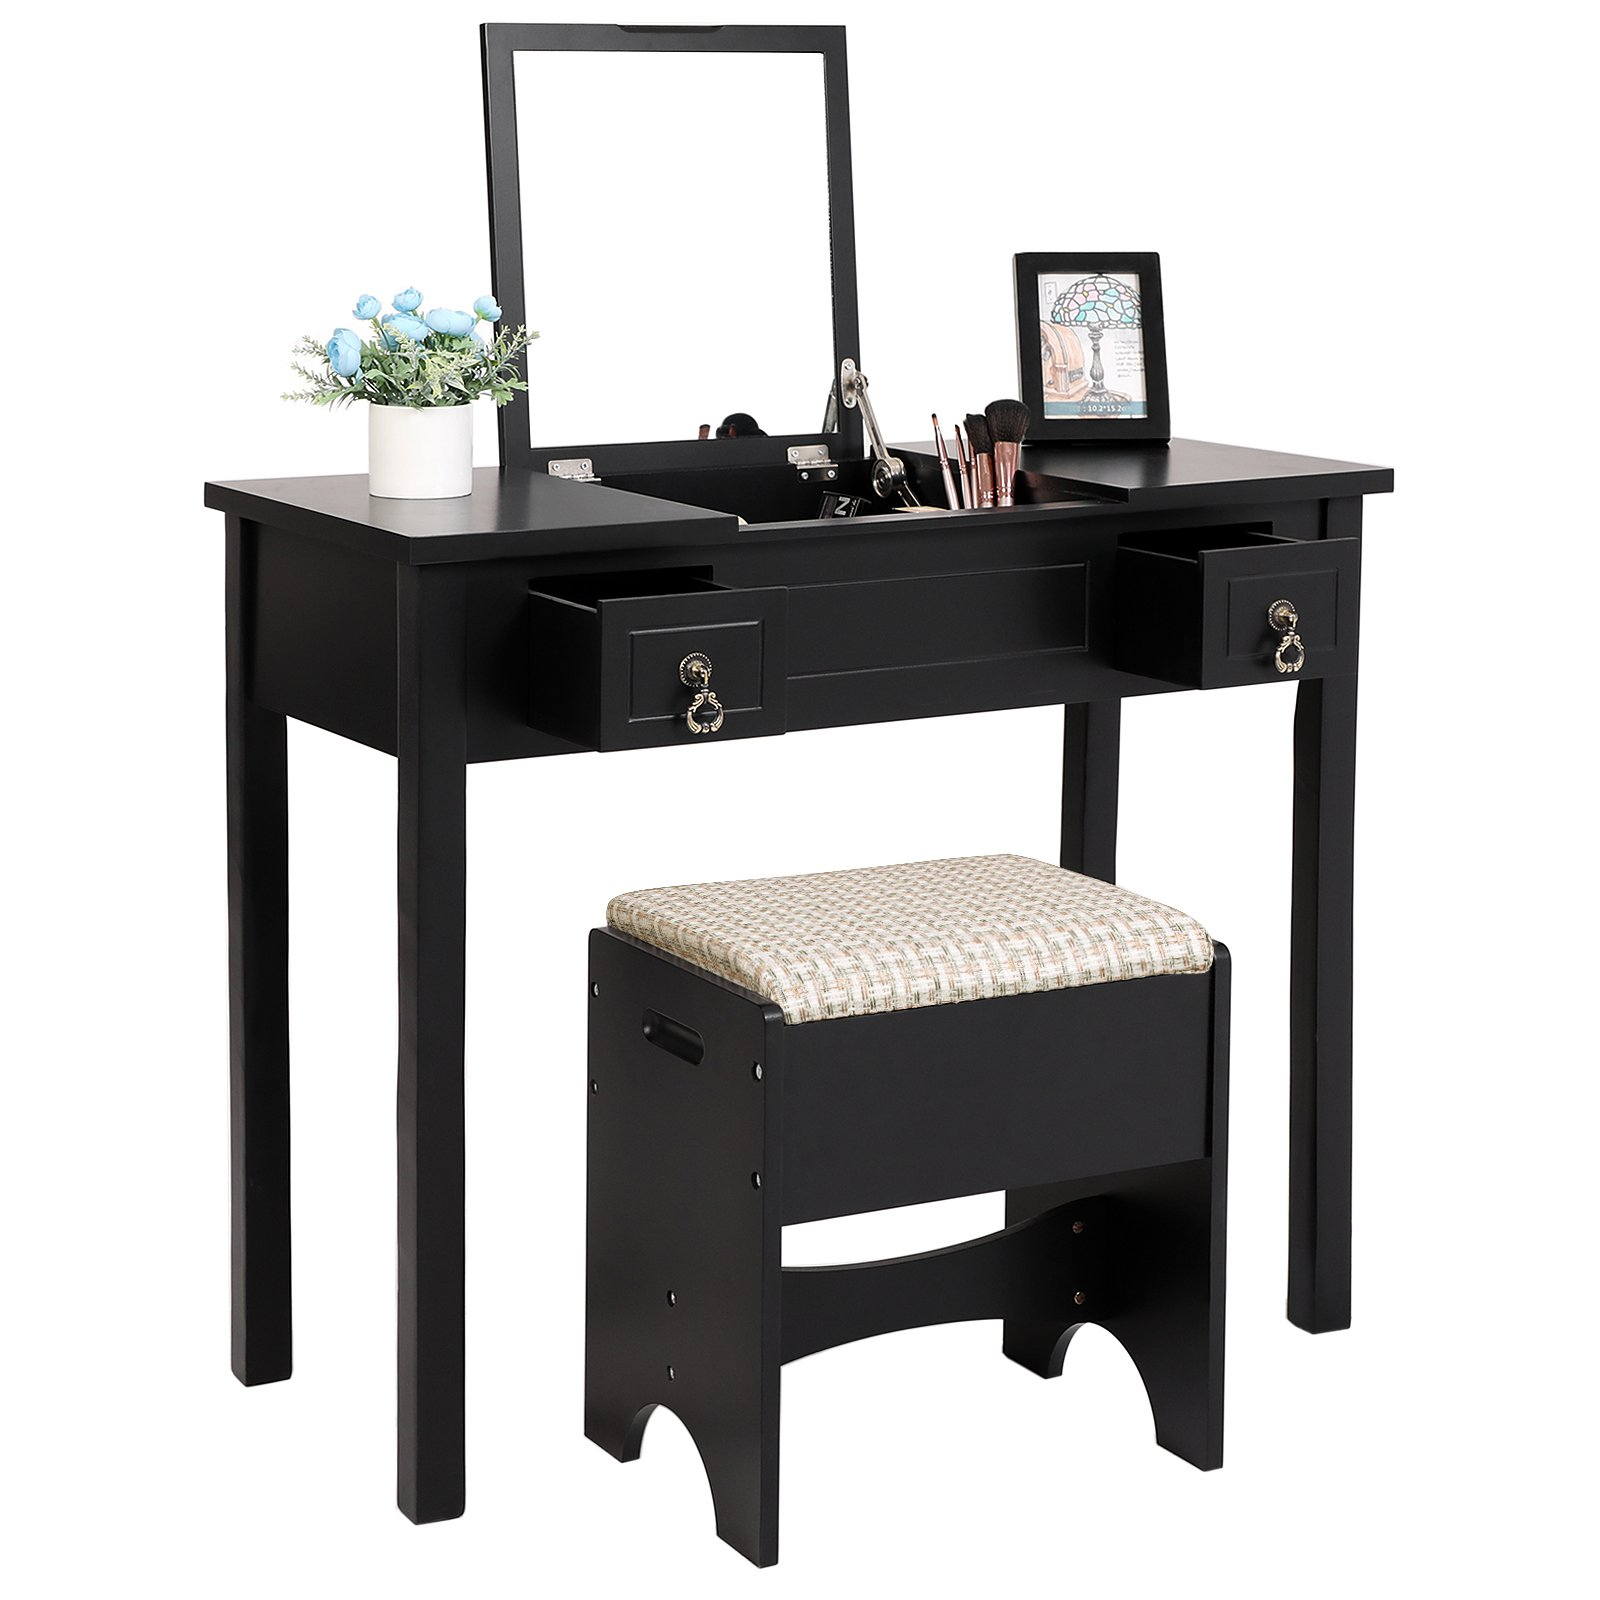 SONGMICS Vanity Set with Flip Top Mirror Cushioned Stool Makeup Dressing Table 2 Drawers 3 Removable Organizers Black URDT01B